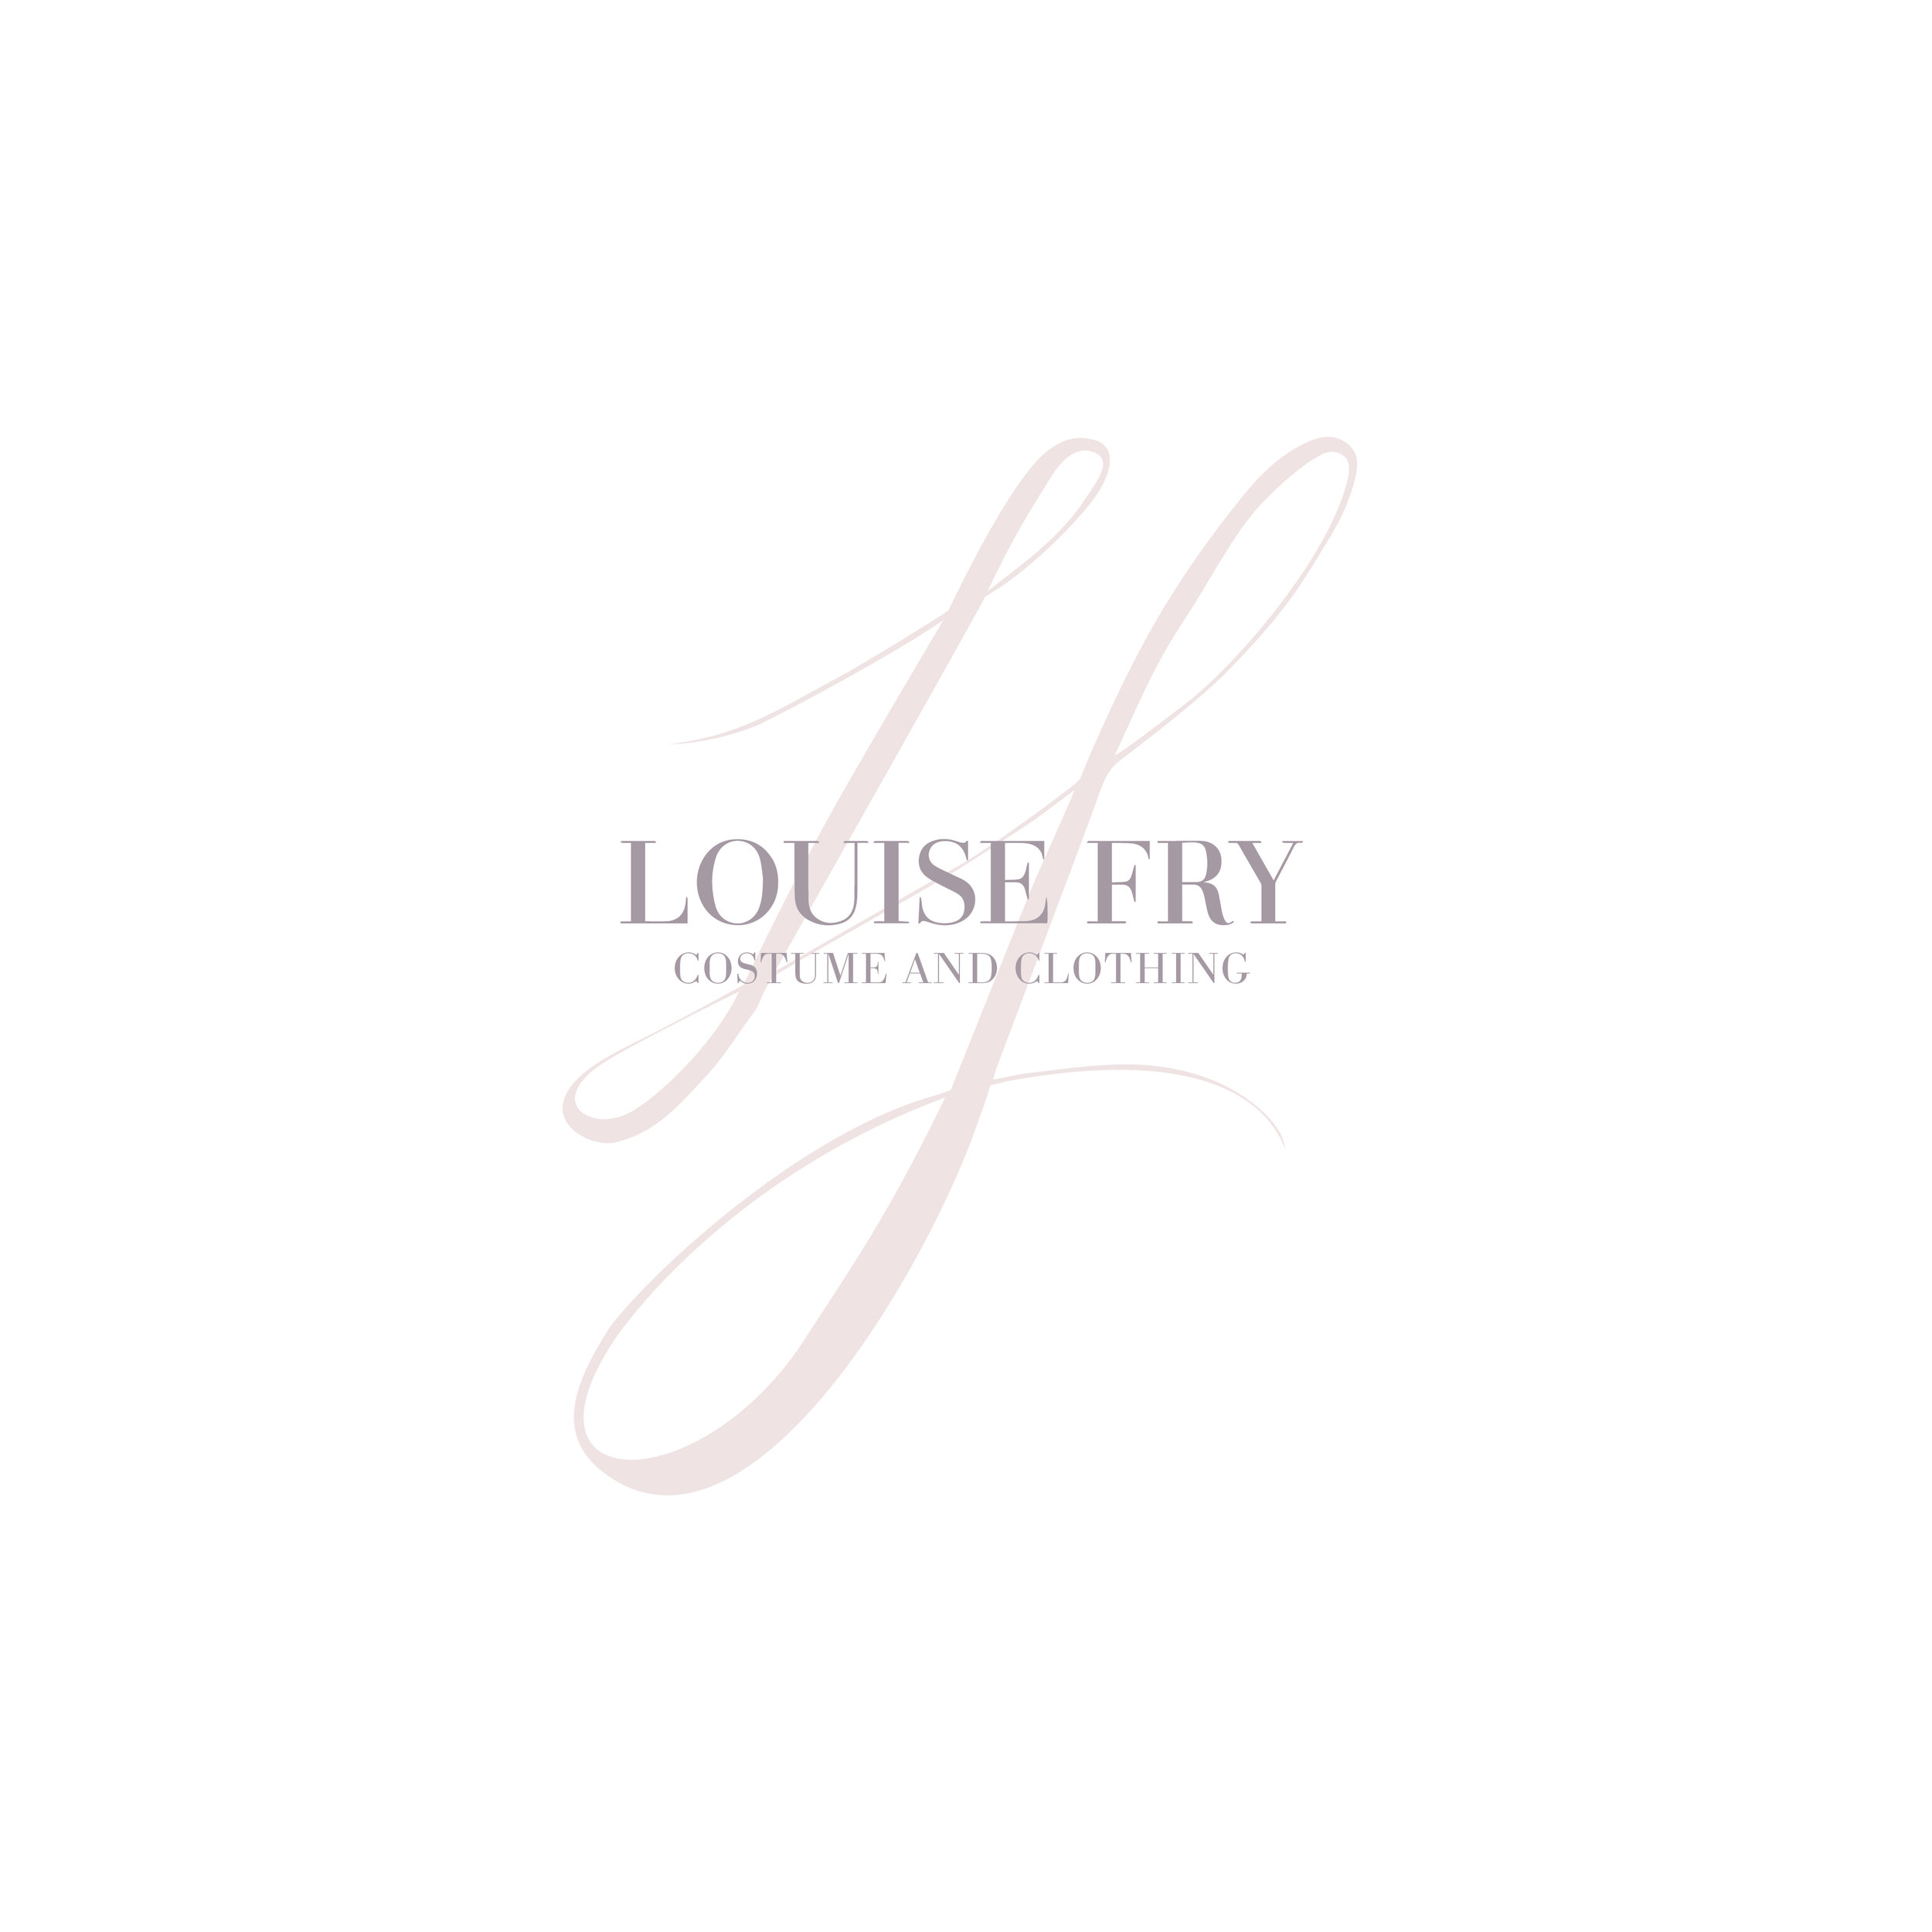 Louise | Louise Fry Costume and Clothing